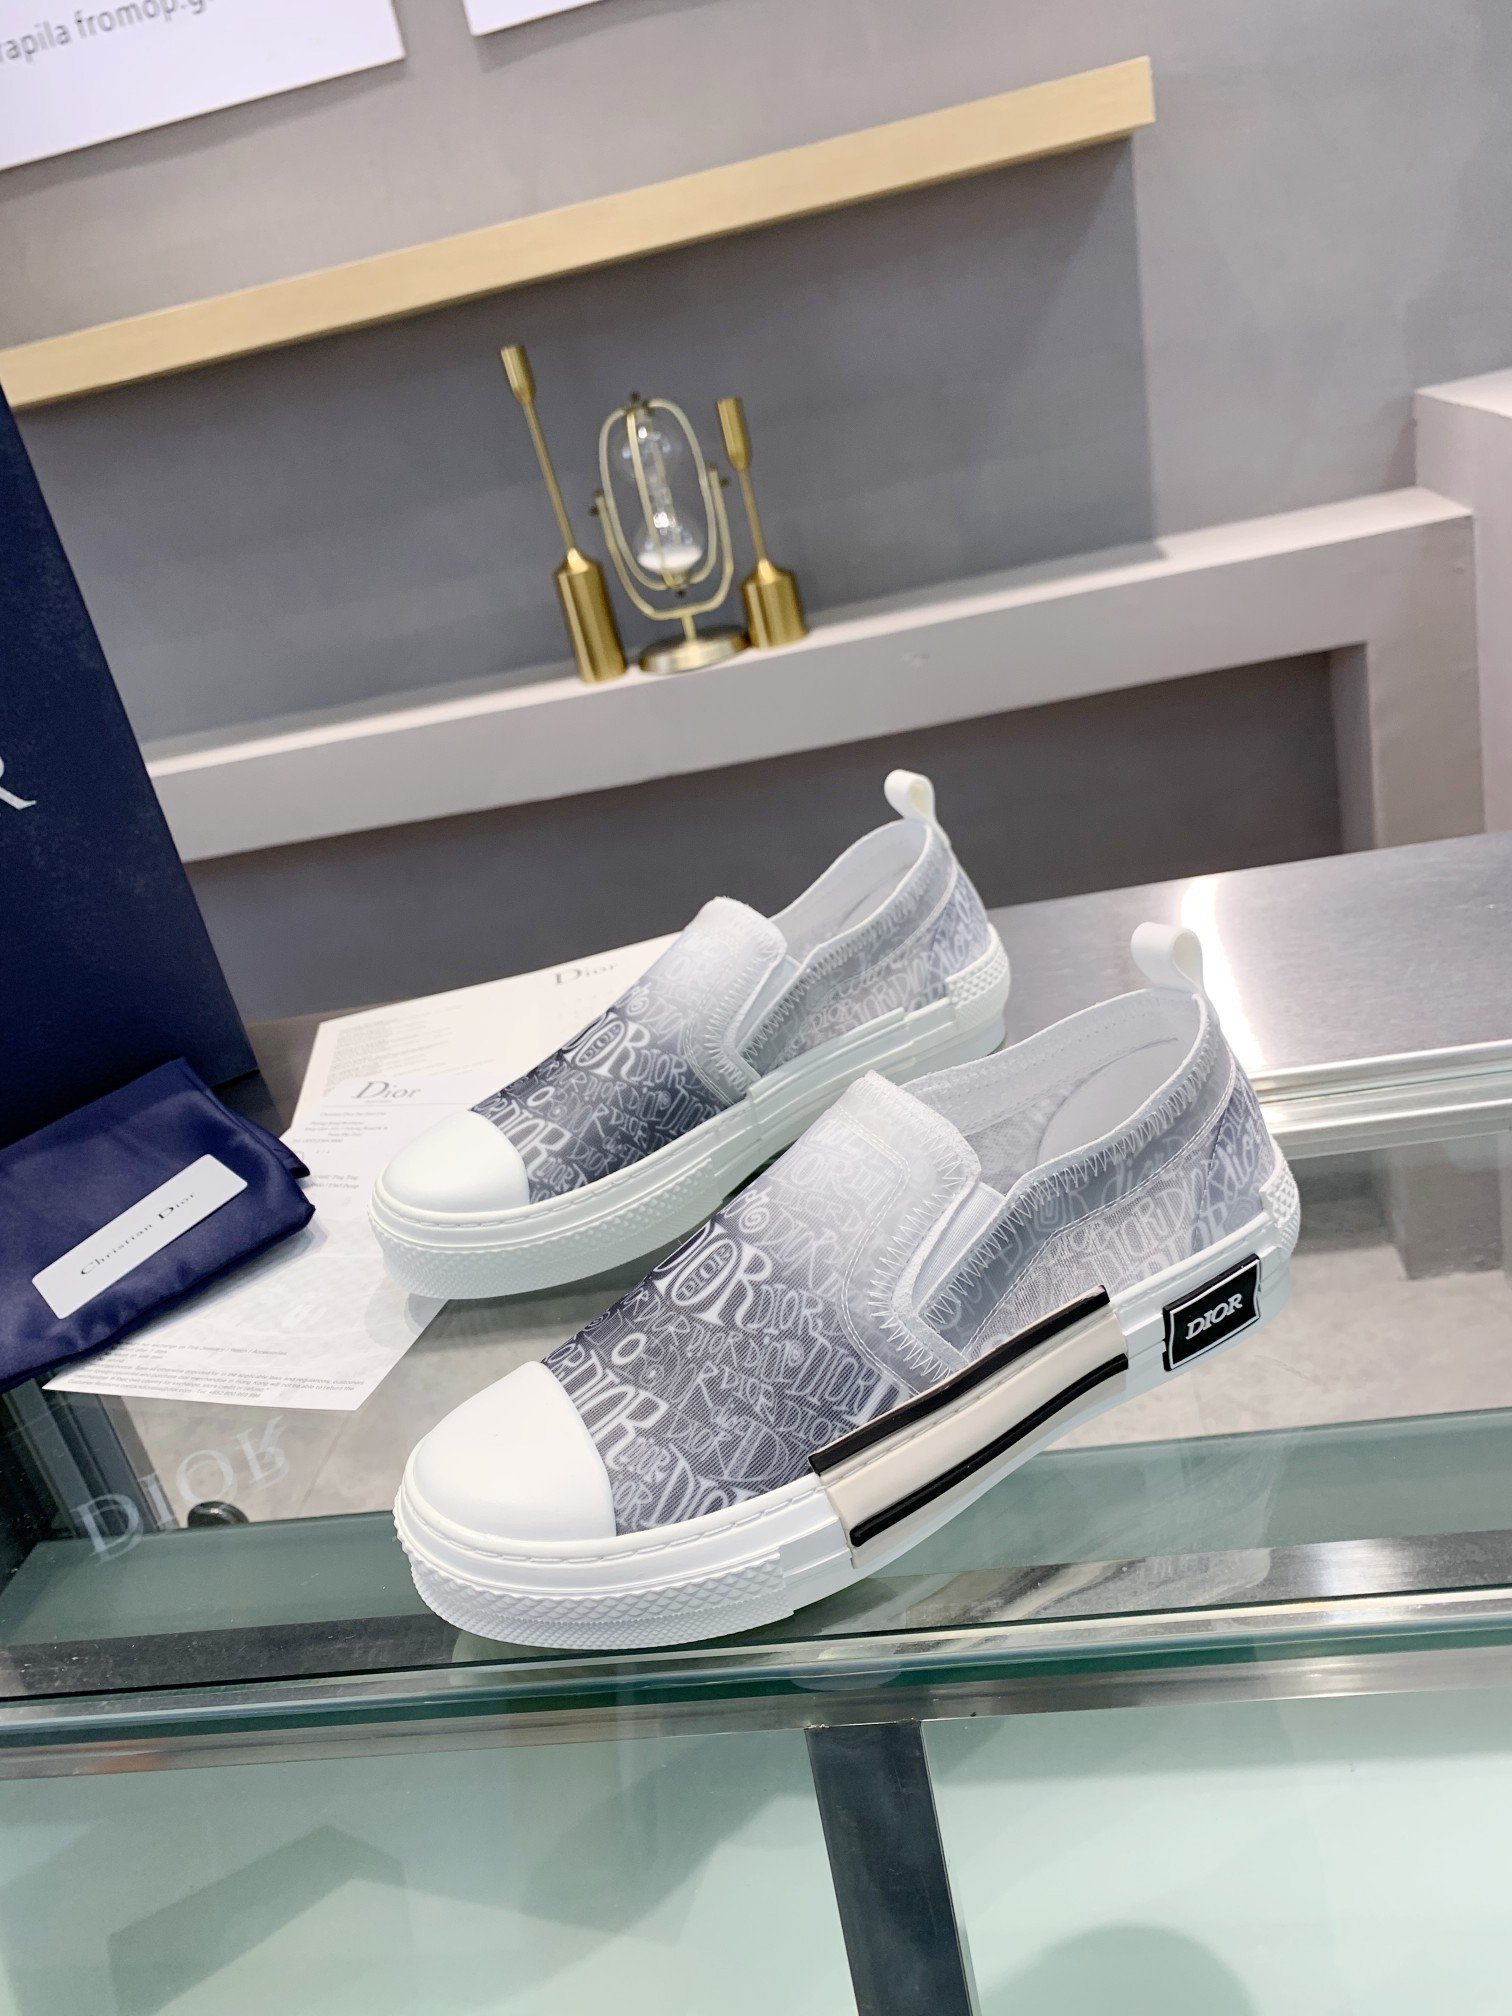 Image of DIOR  Fashion Men Women's Casual Running Sport Shoes Sneakers Slipper Sandals High Heels Shoes